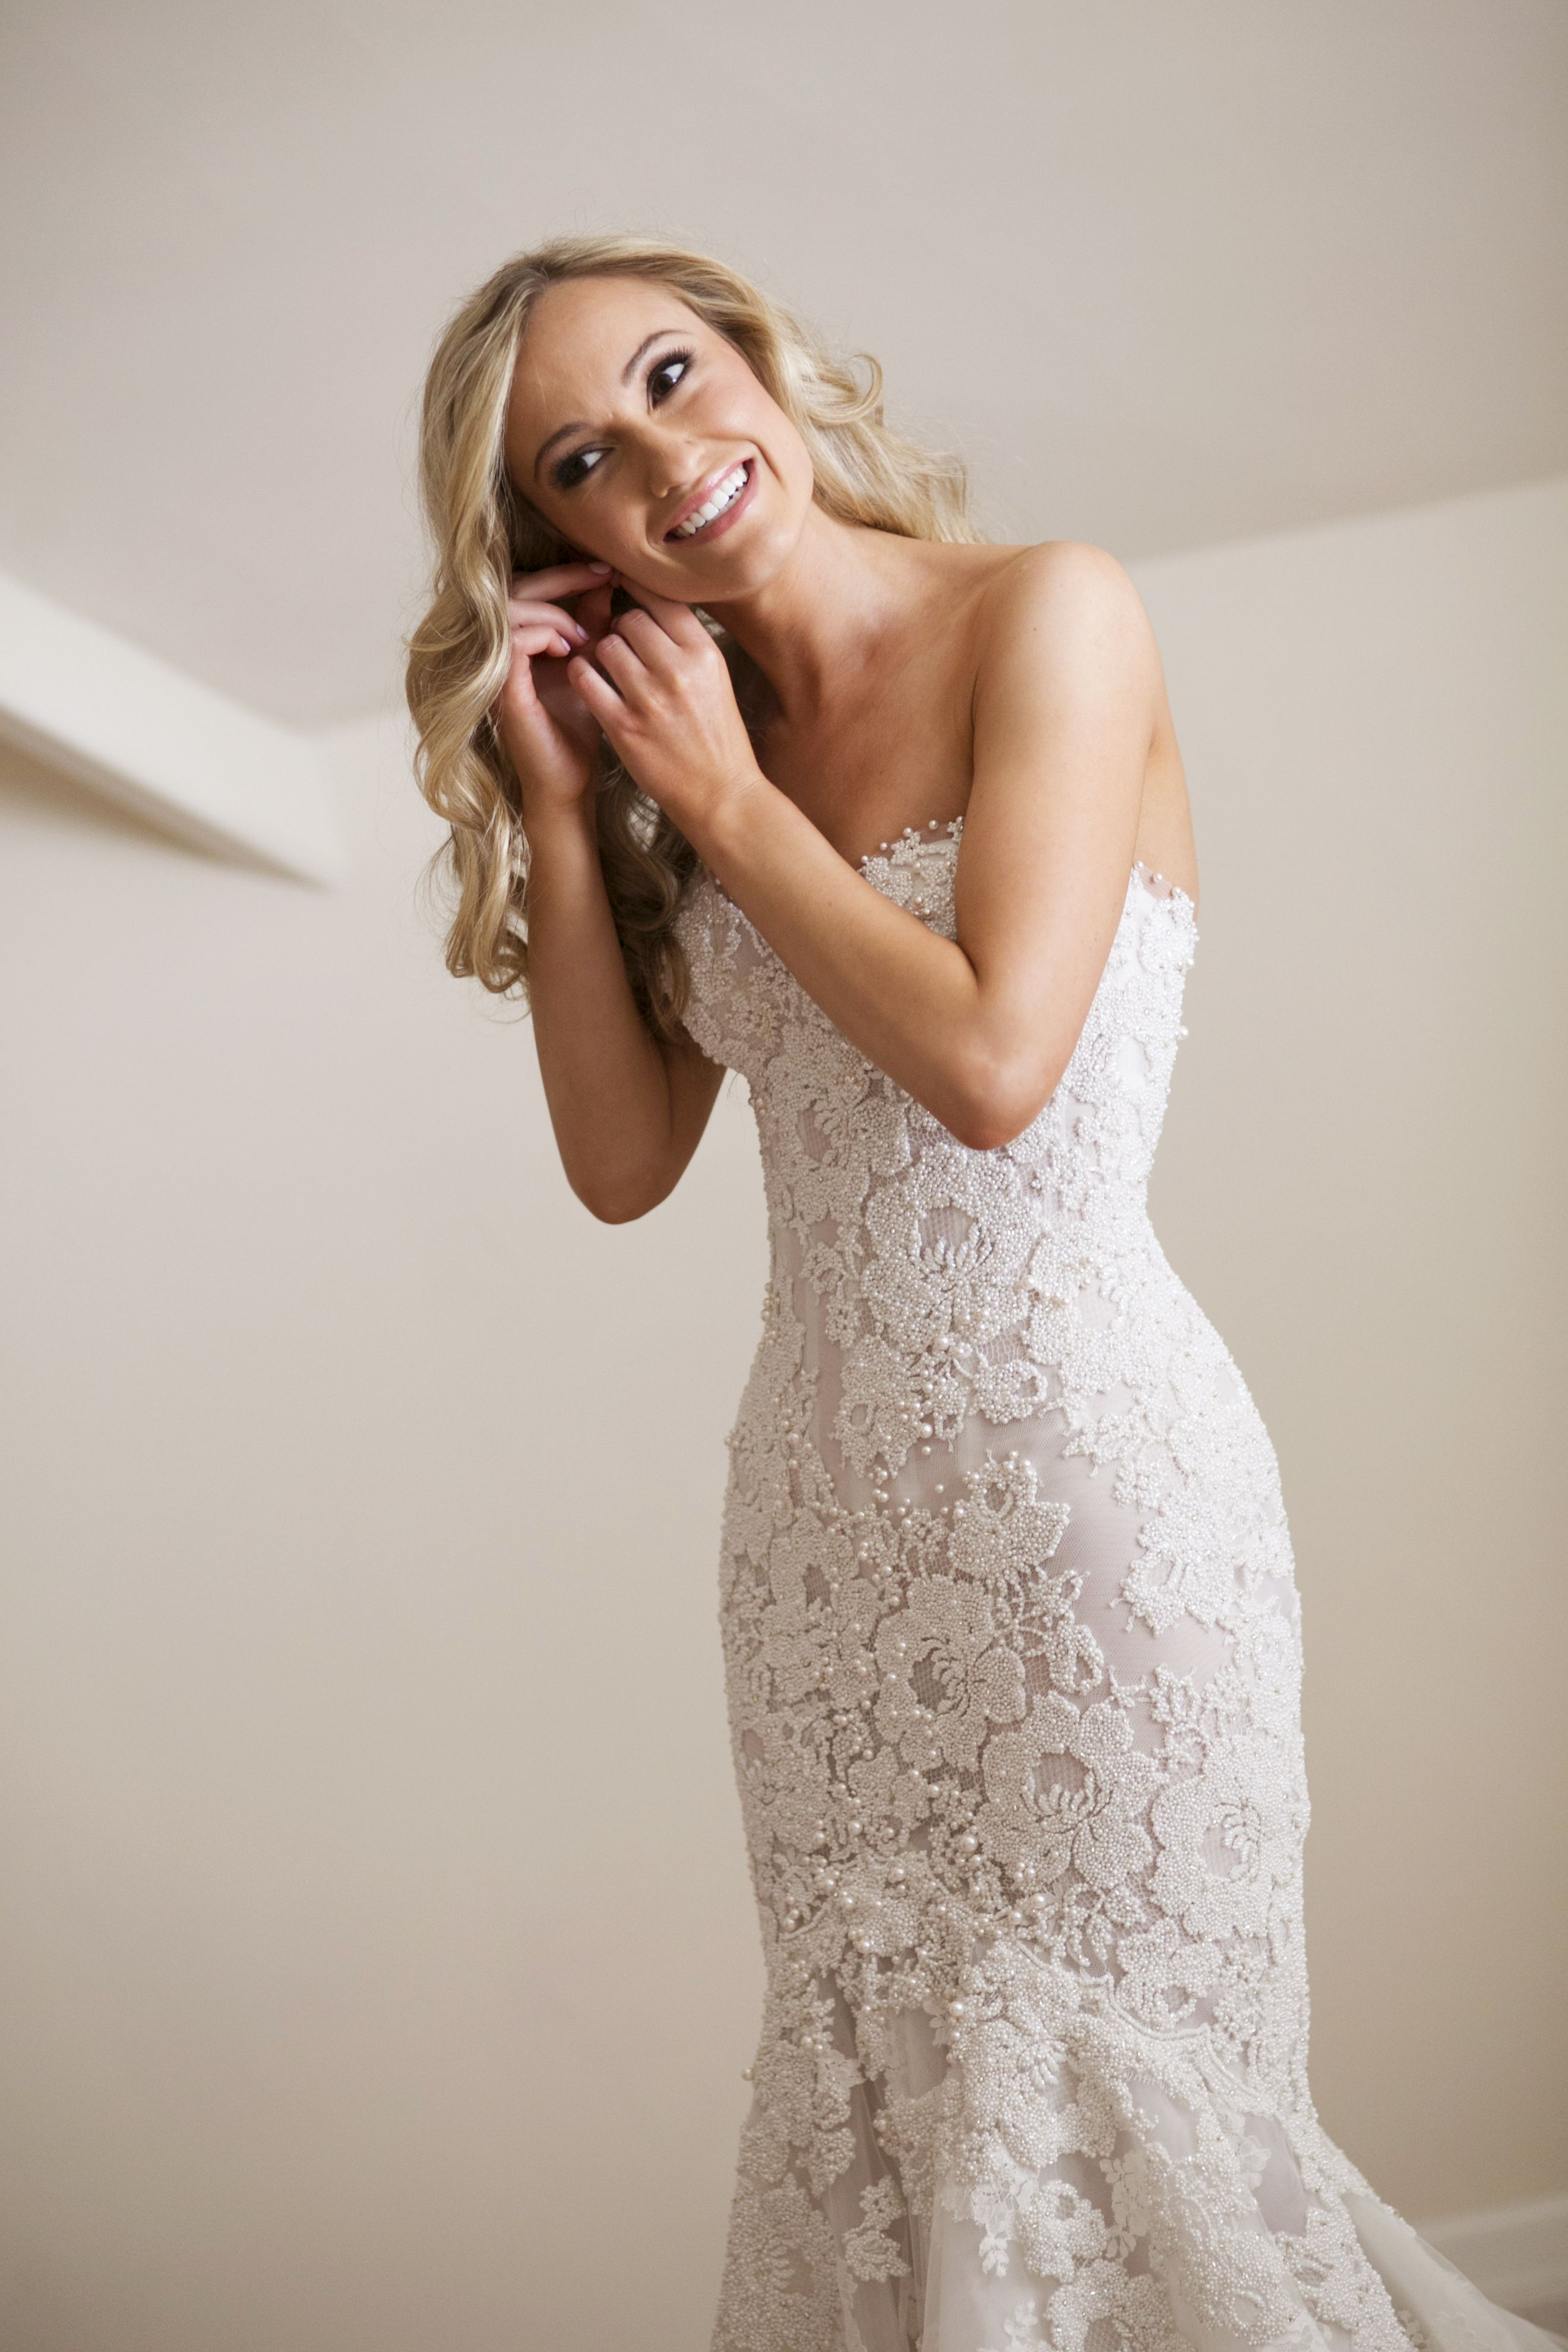 Bride in her amazing Lace wedding dress | itakeyou.co.uk